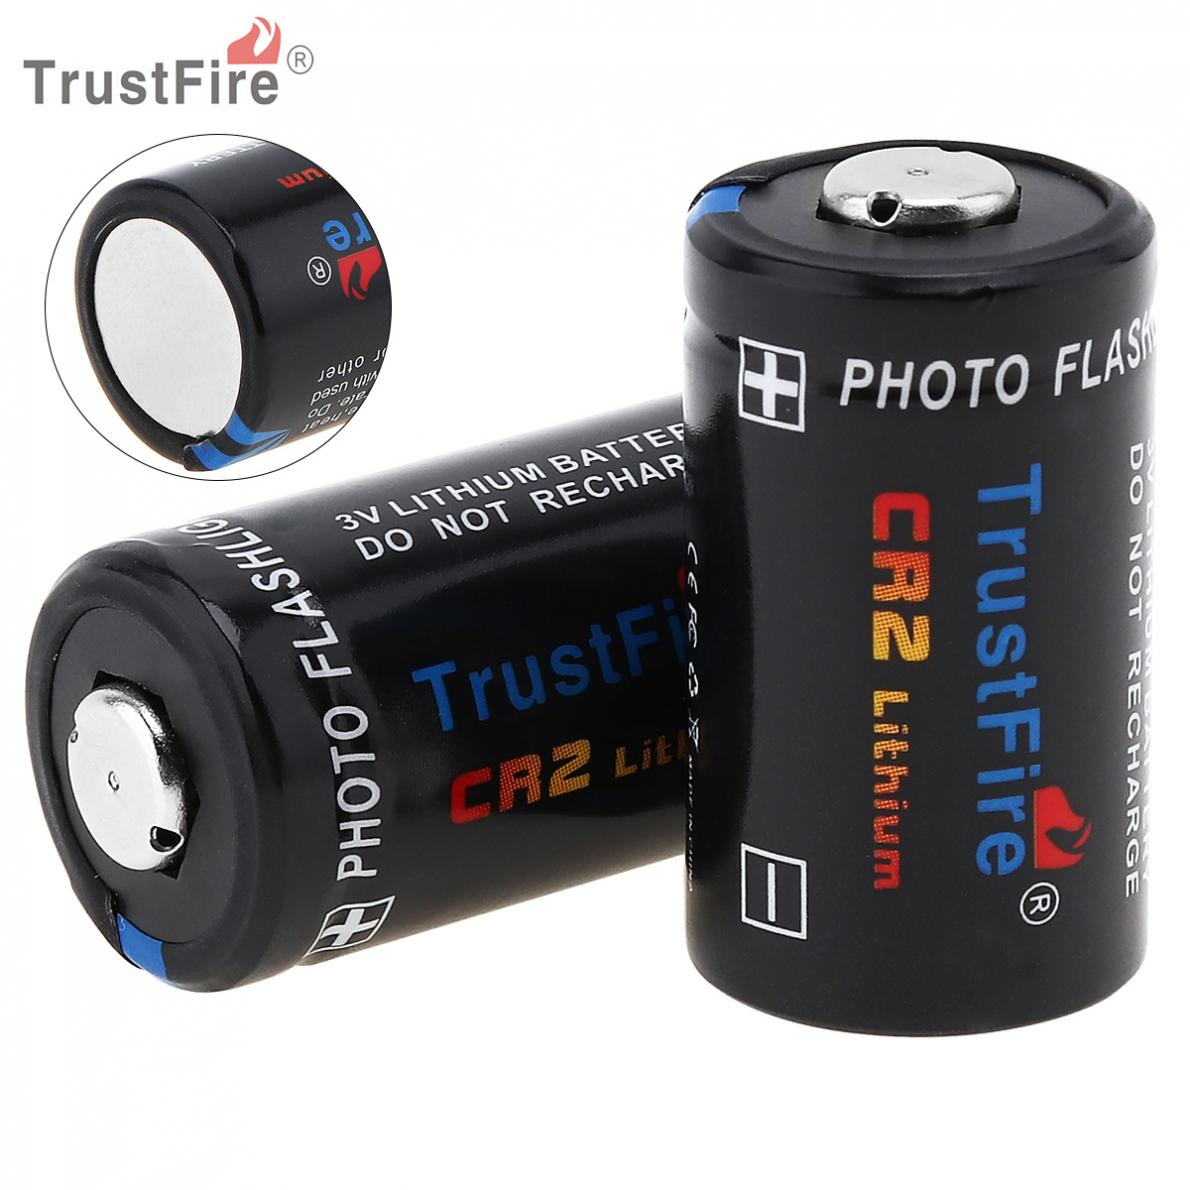 все цены на TrustFire 2pcs CR2 3V 750mAh Lithium Battery with Safety Relief Valve for Flashlight / Headlamp / Camera